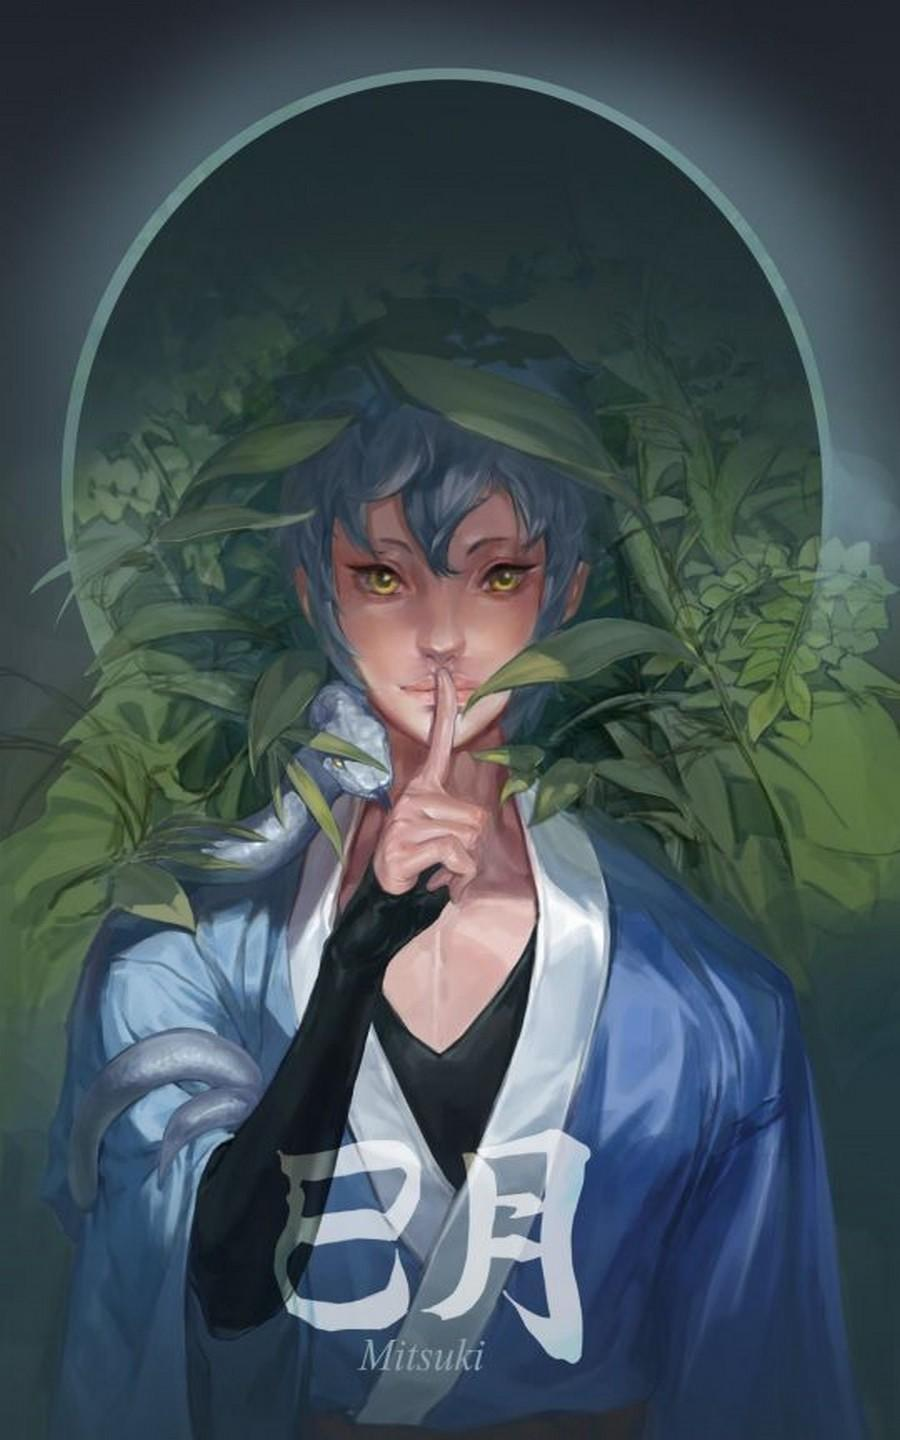 Mitsuki Wallpaper For Android Apk Download